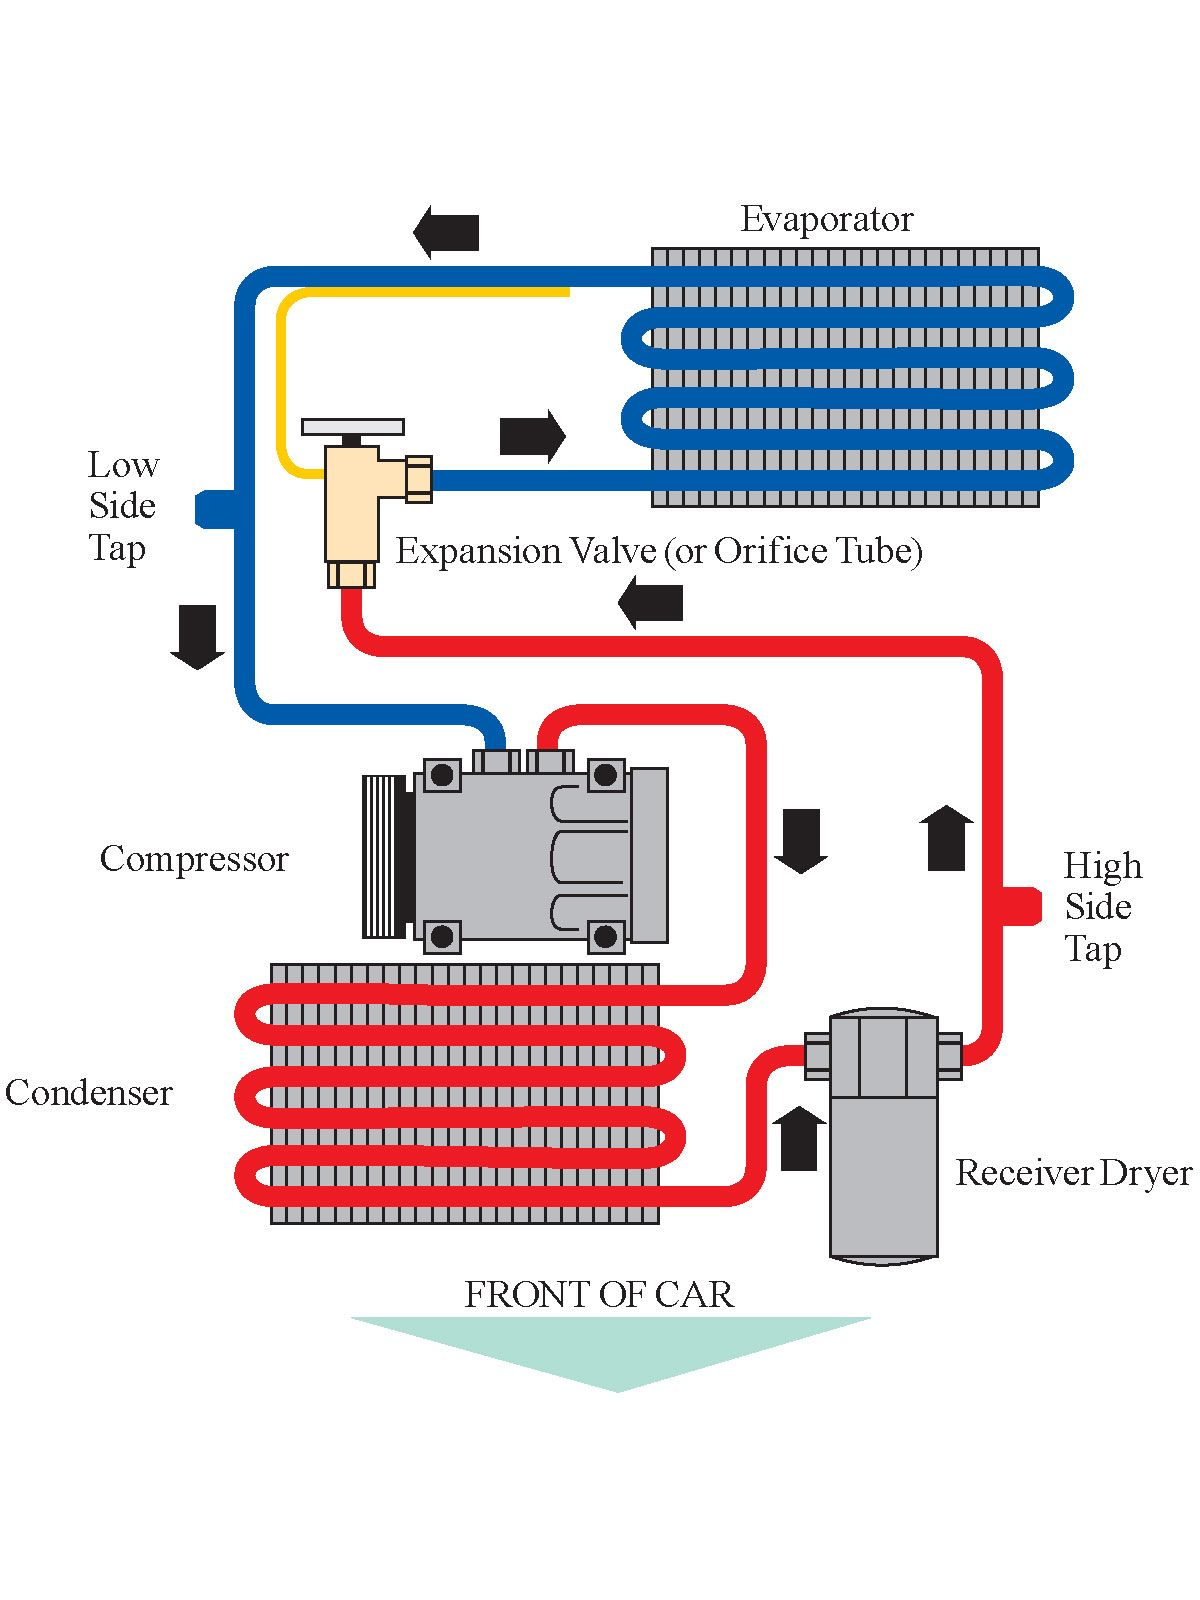 automotive aircon wiring diagram ac system diagram before you call a ac repair man visit my ... peugeot 206 aircon wiring diagram